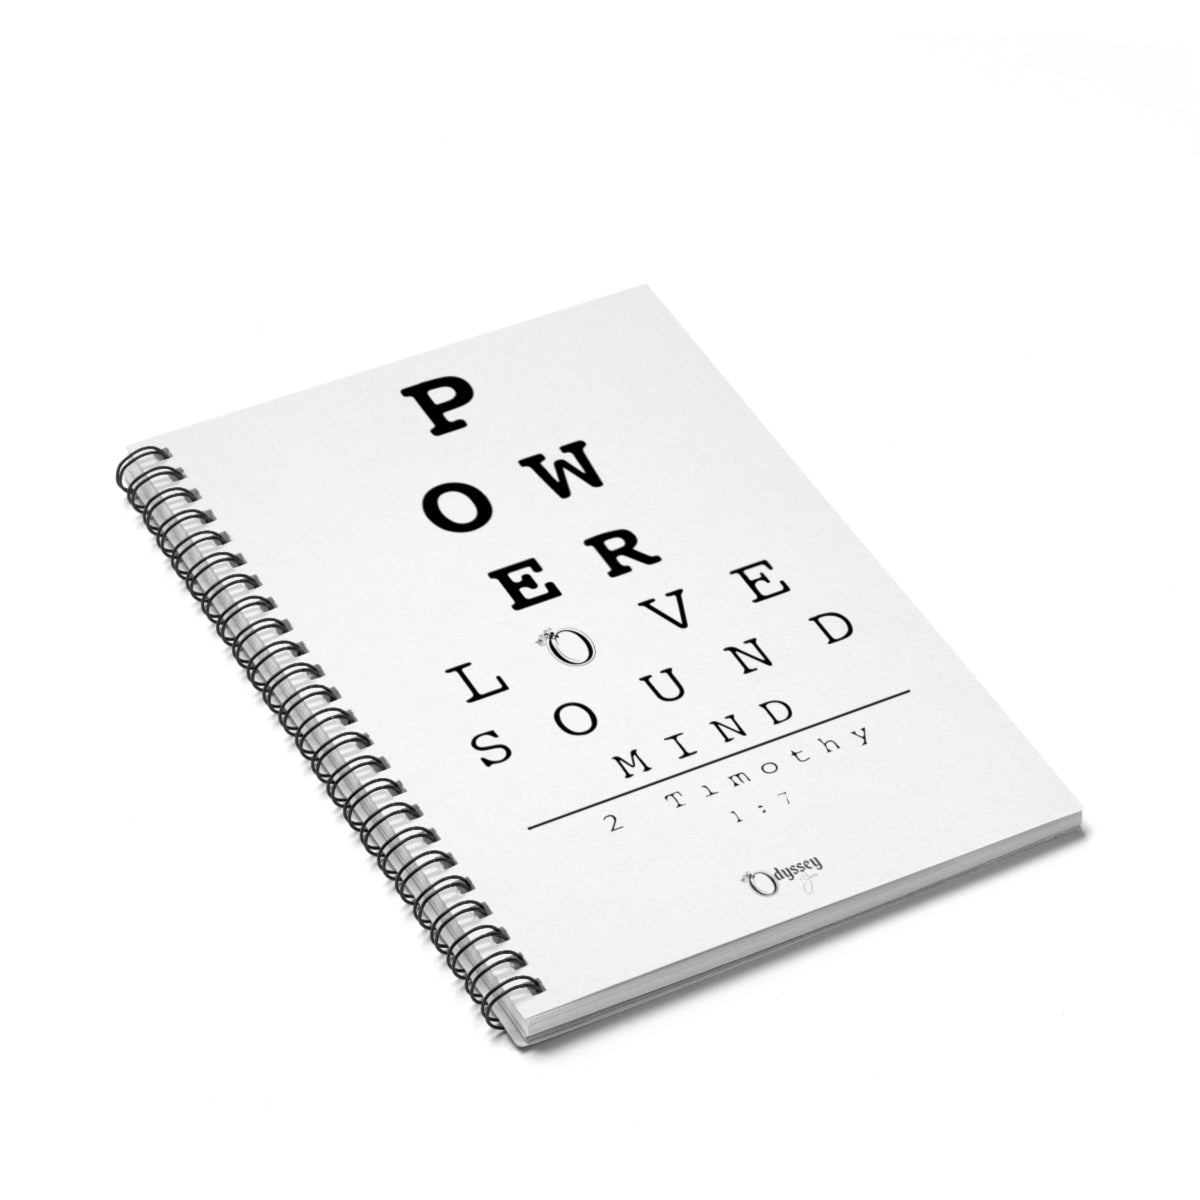 Odyssey Power, Love Sound Mind Spiral Notebook - Paper products - Odyssey By Yendi